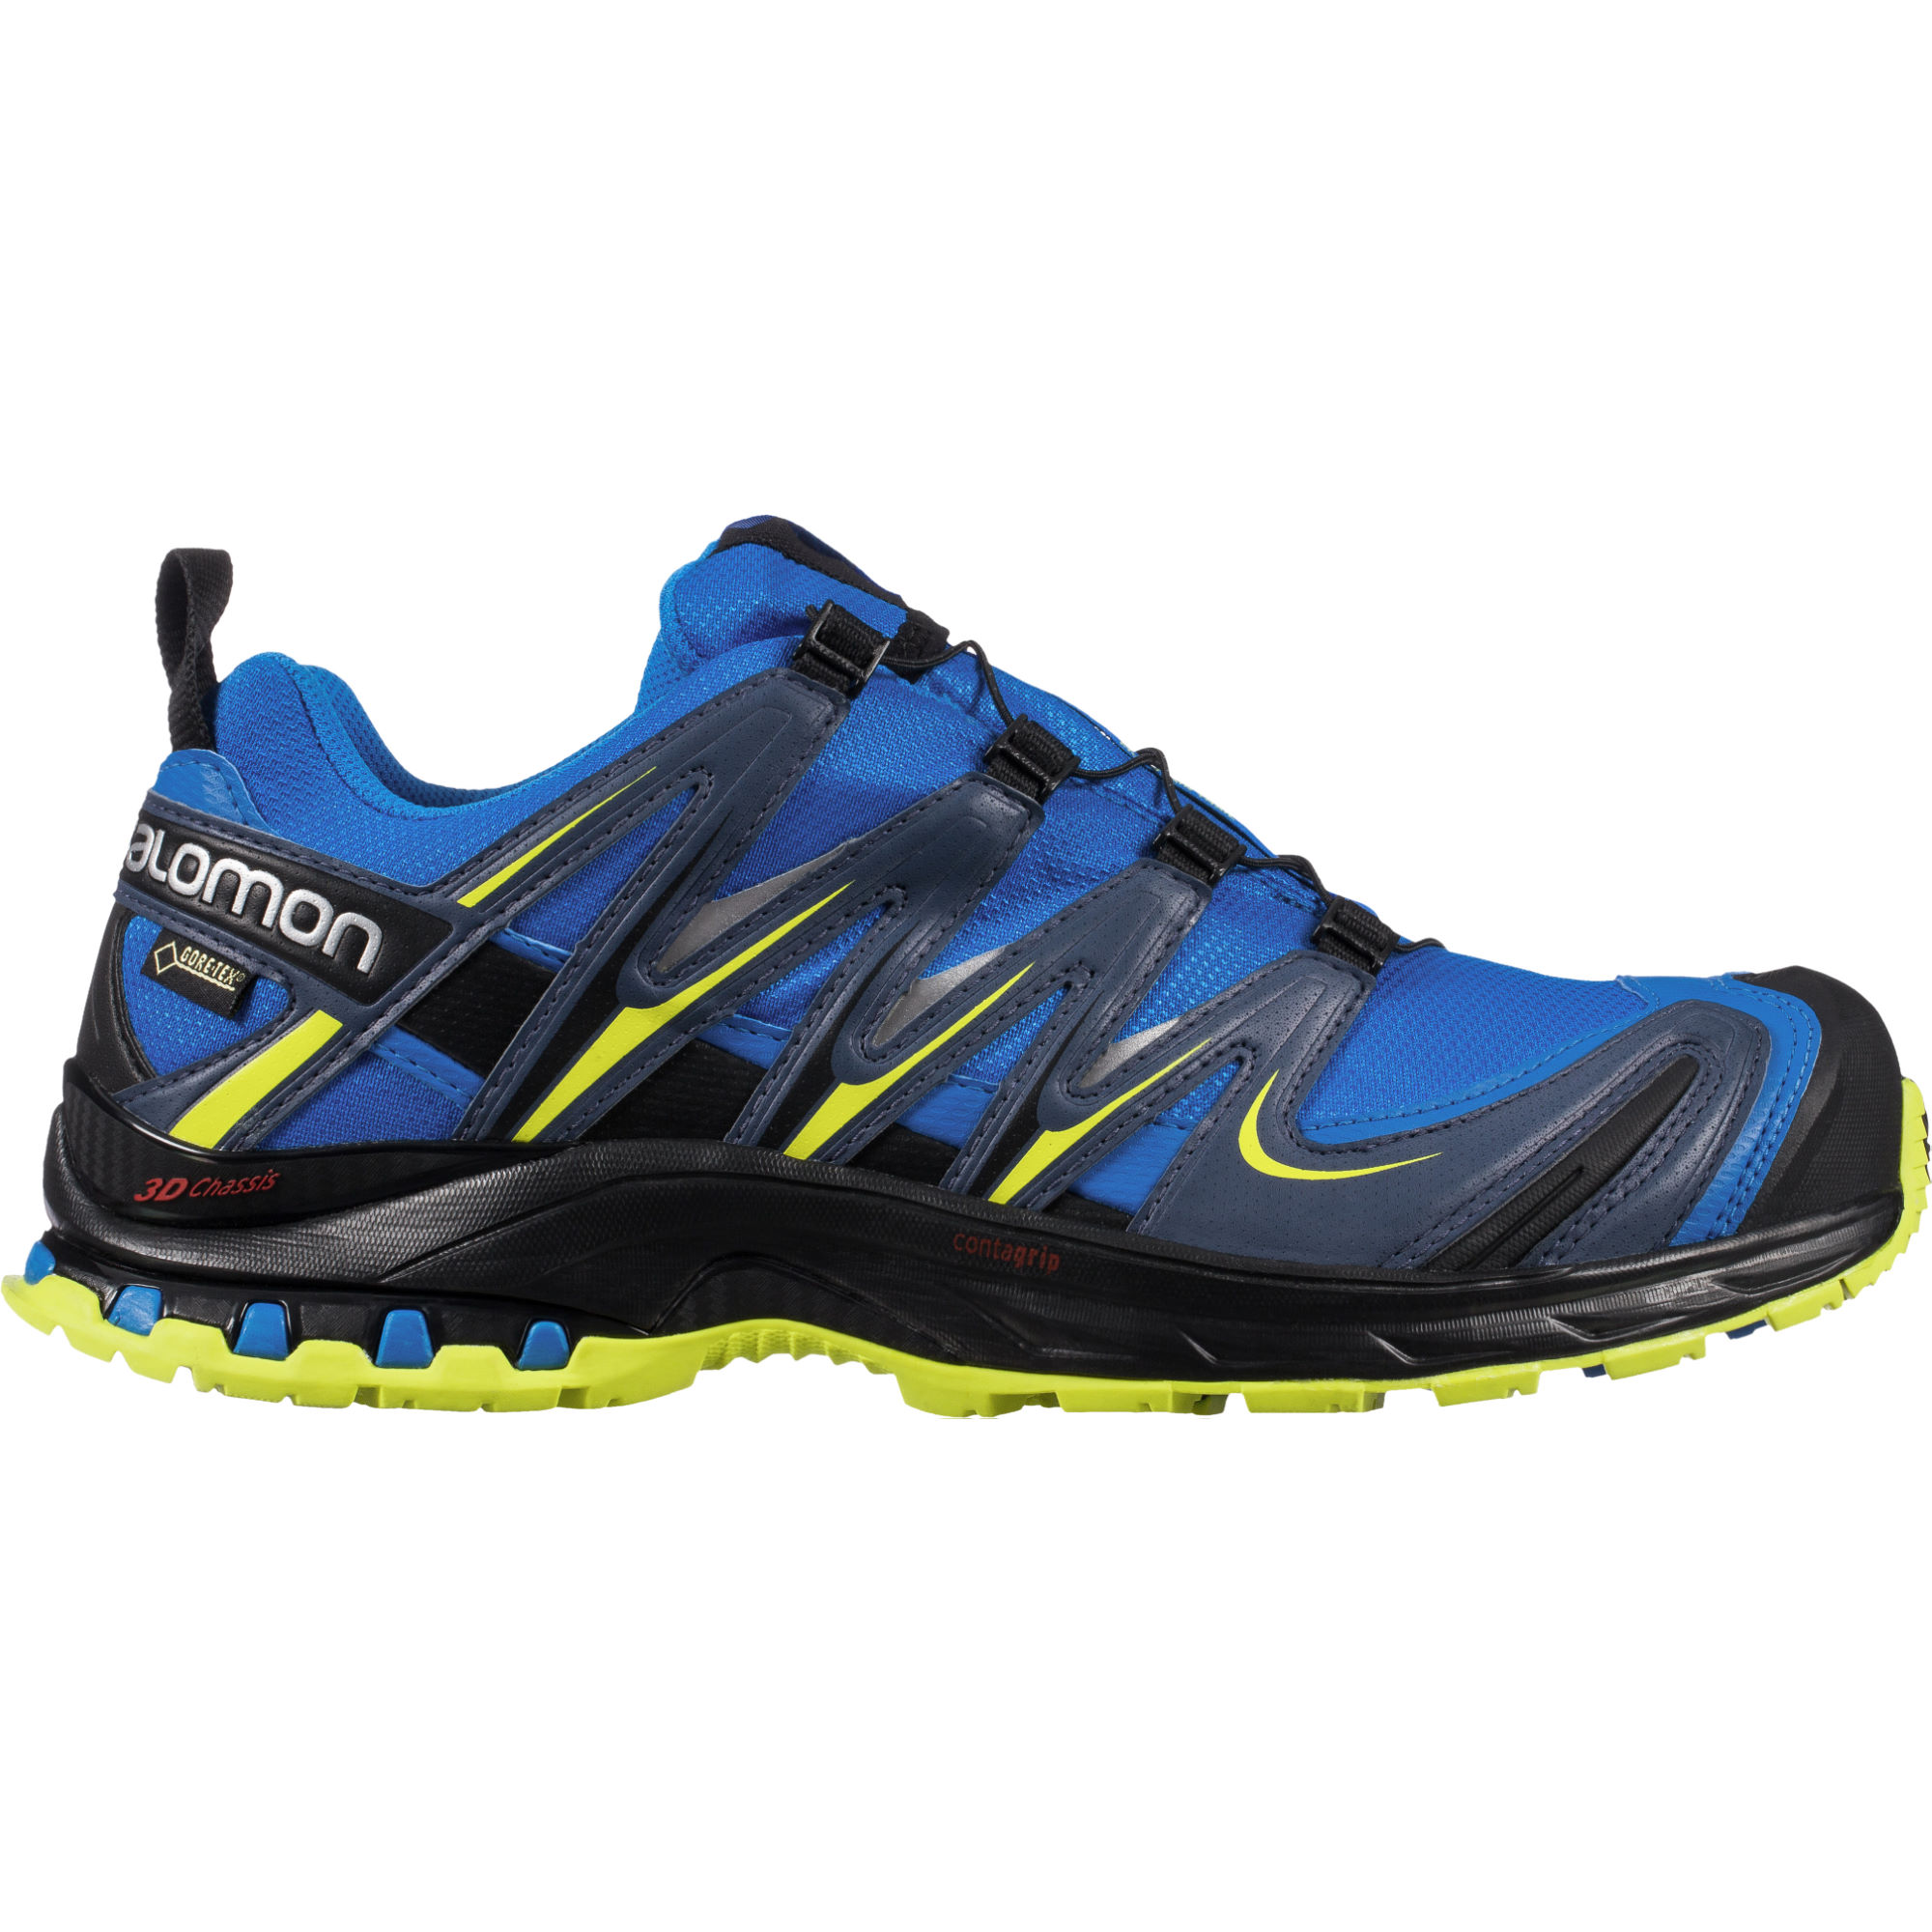 wiggle salomon xa pro 3d gtx shoes aw15 offroad running shoes. Black Bedroom Furniture Sets. Home Design Ideas